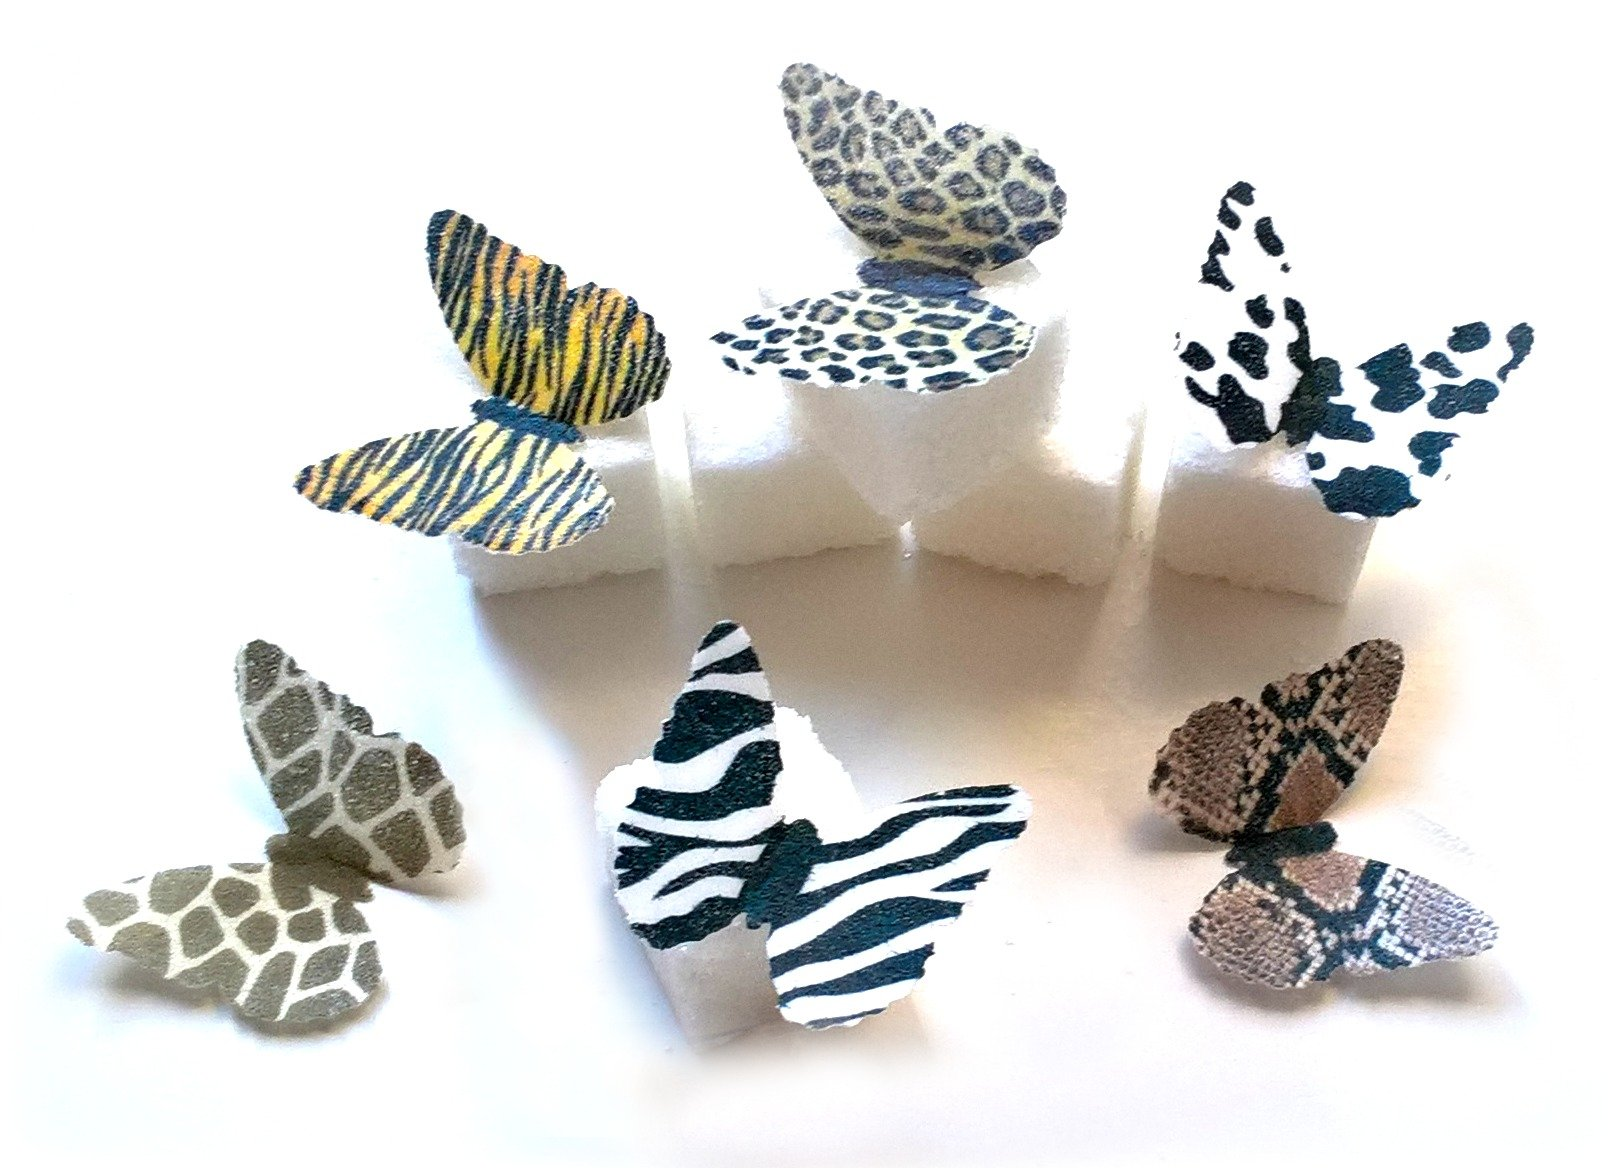 24 Animal Print Edible Wafer Paper Butterflies Mini Very Small 1'' Cake Cupcake Toppers Decoration Cow Giraffe Snake Leopard Cheetah Zebra Tiger by Deco Machine Butterflies (Image #1)